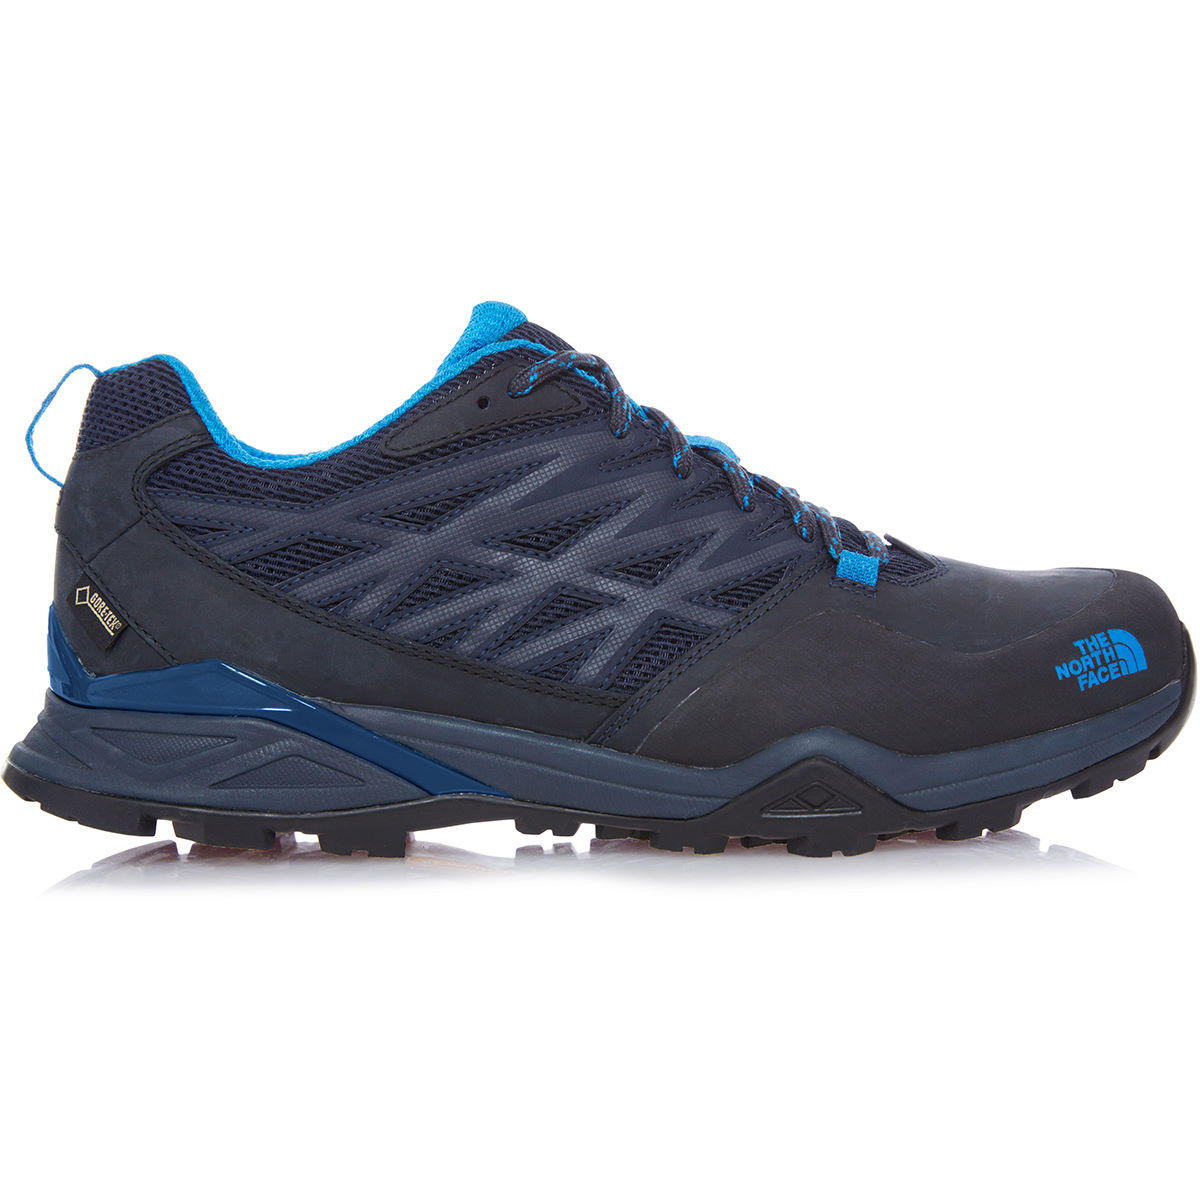 Chaussures The North Face Hedgehog Hike Gore-Tex - 9 Urban Navy